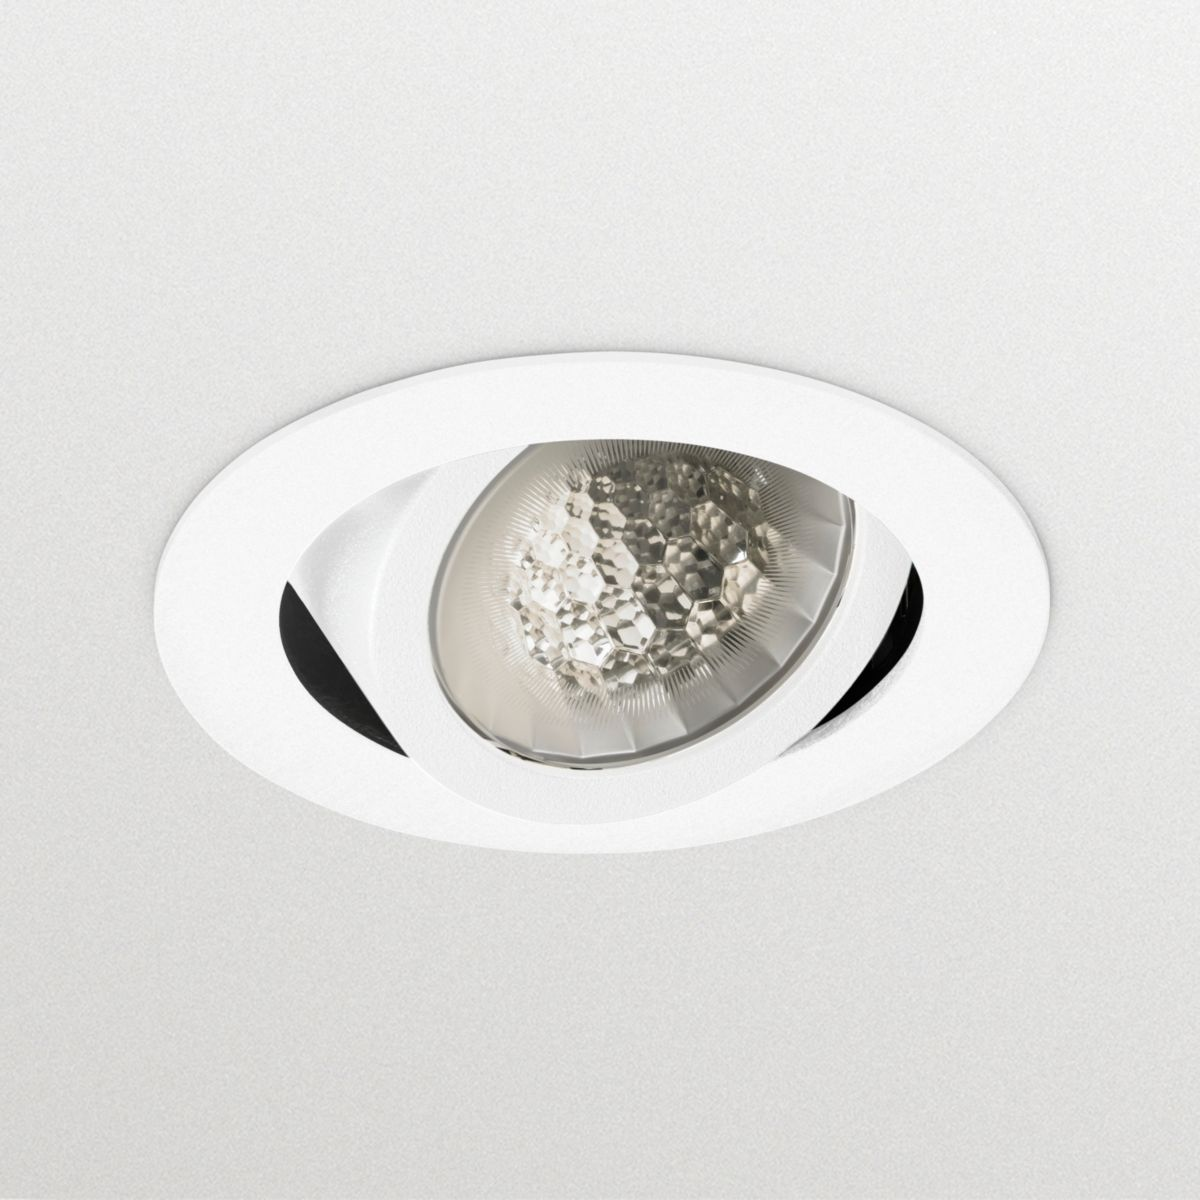 Signify LuxSpace Accent Compact G3 - LED Module, system flux 3900 lm - Premium white with CRI ≥90 97318900